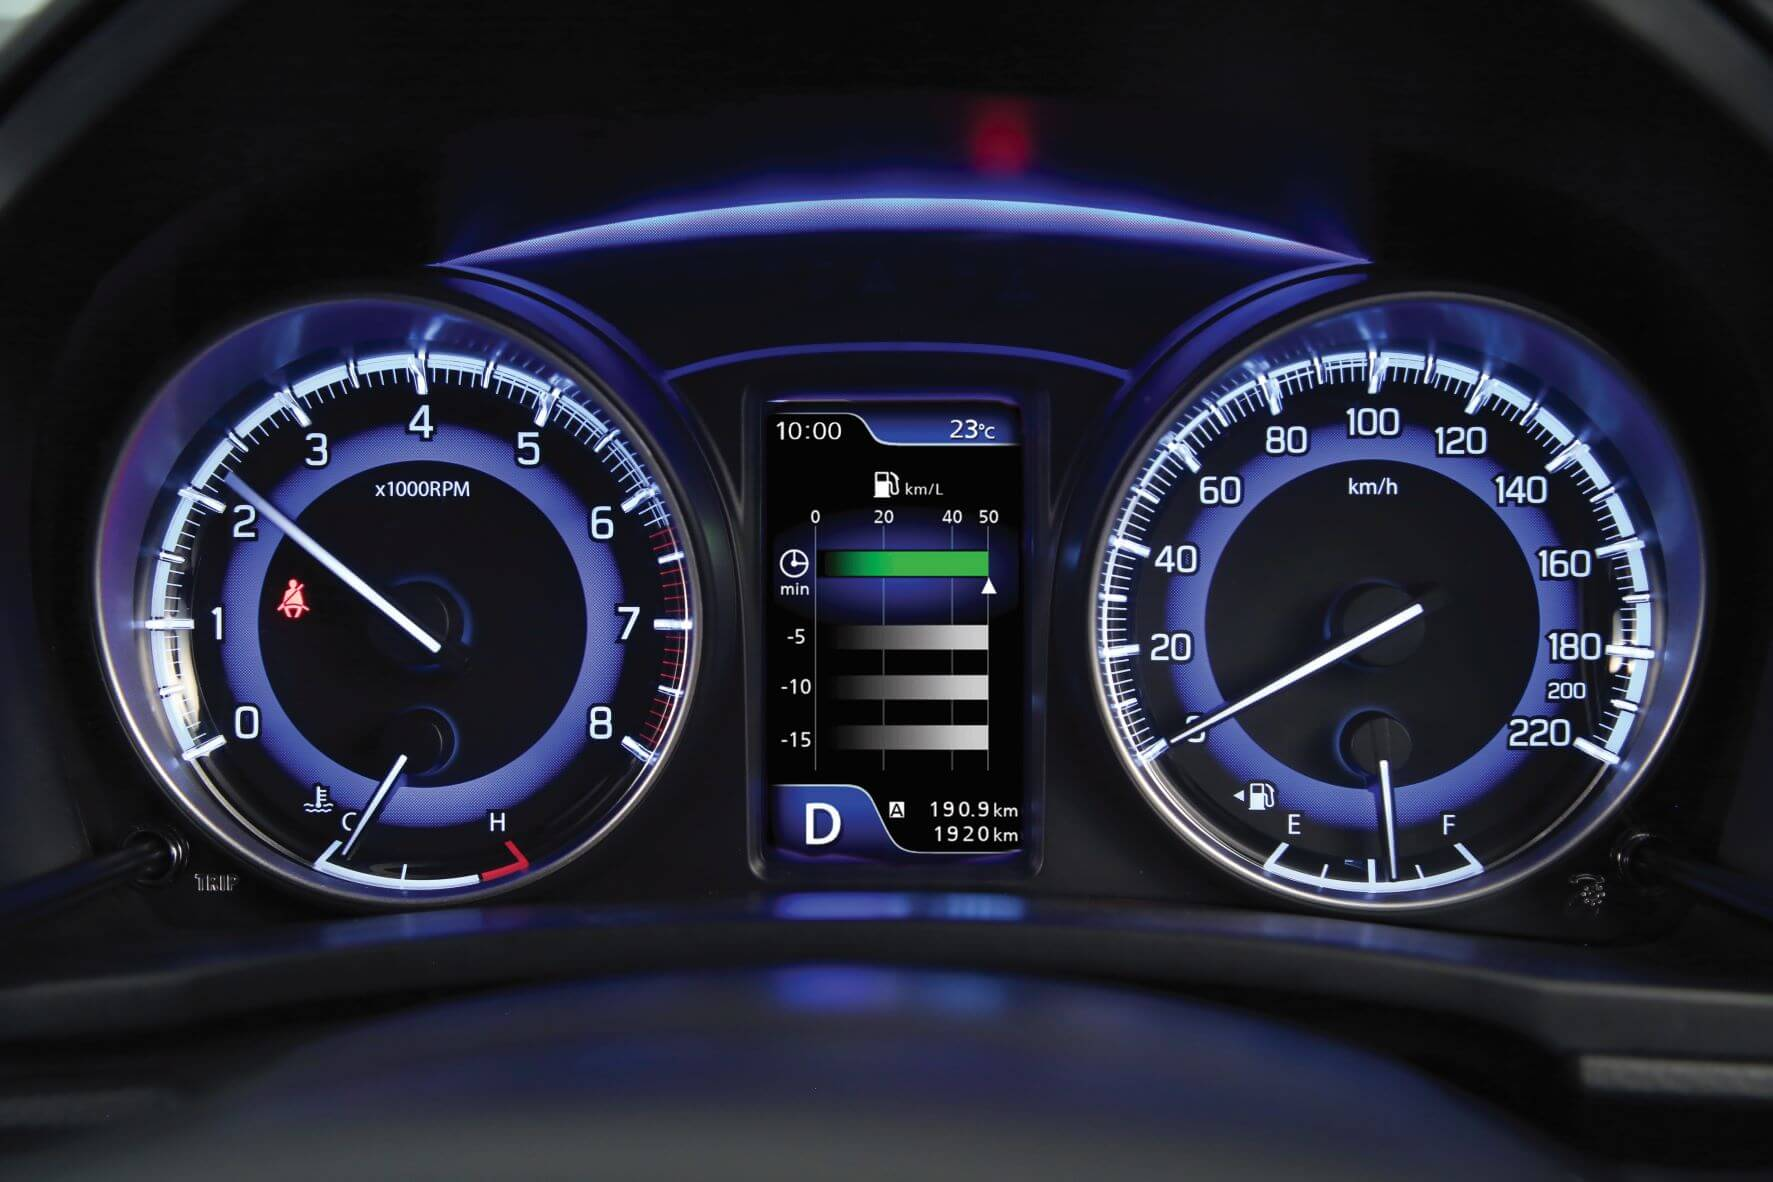 11559_6072_SASA_Baleno_Dashboard_Fuel_Efficiency_Photo.jpg